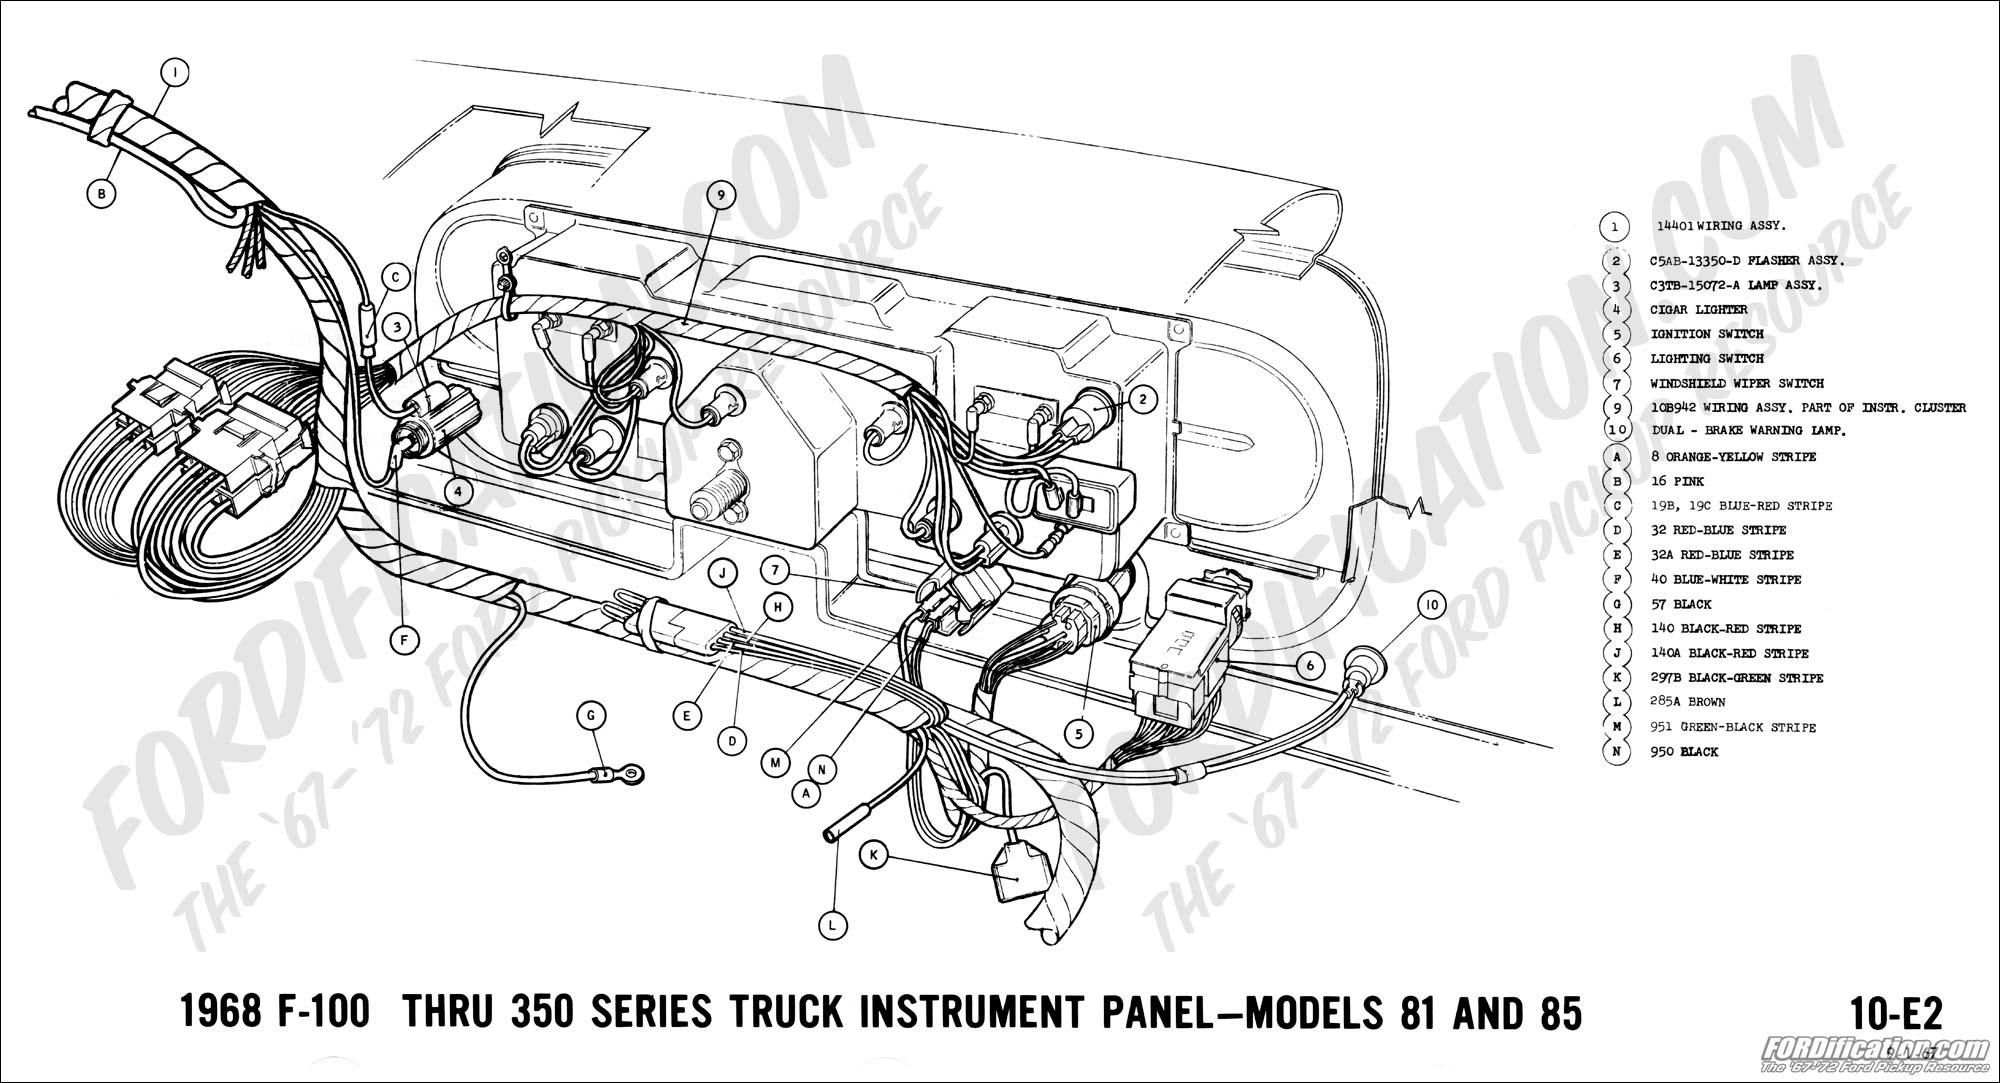 Rv Ac Control Box Free Download Wiring Diagrams Pictures Wiring